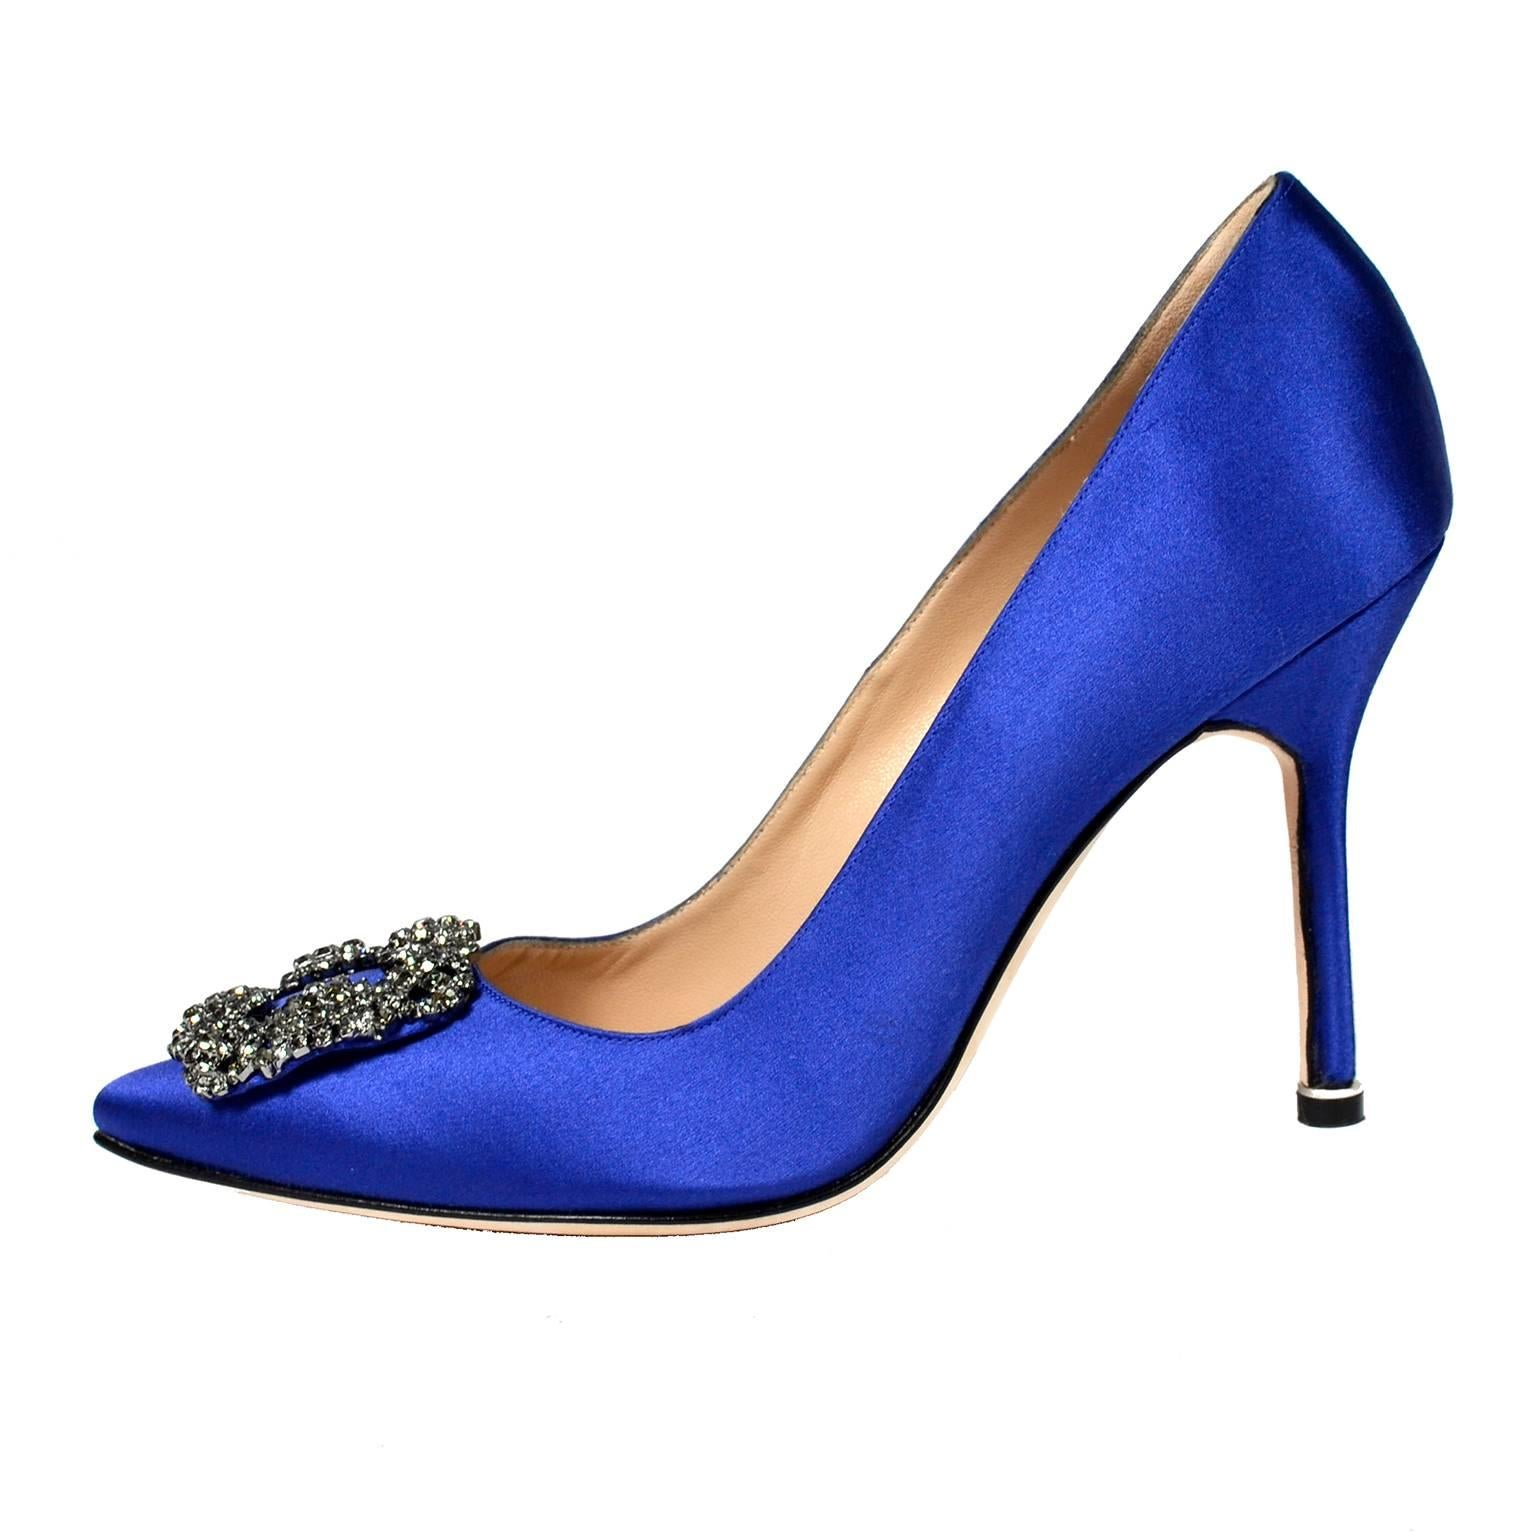 new manolo blahnik carrie bradshaw blue satin shoes lanza heels in